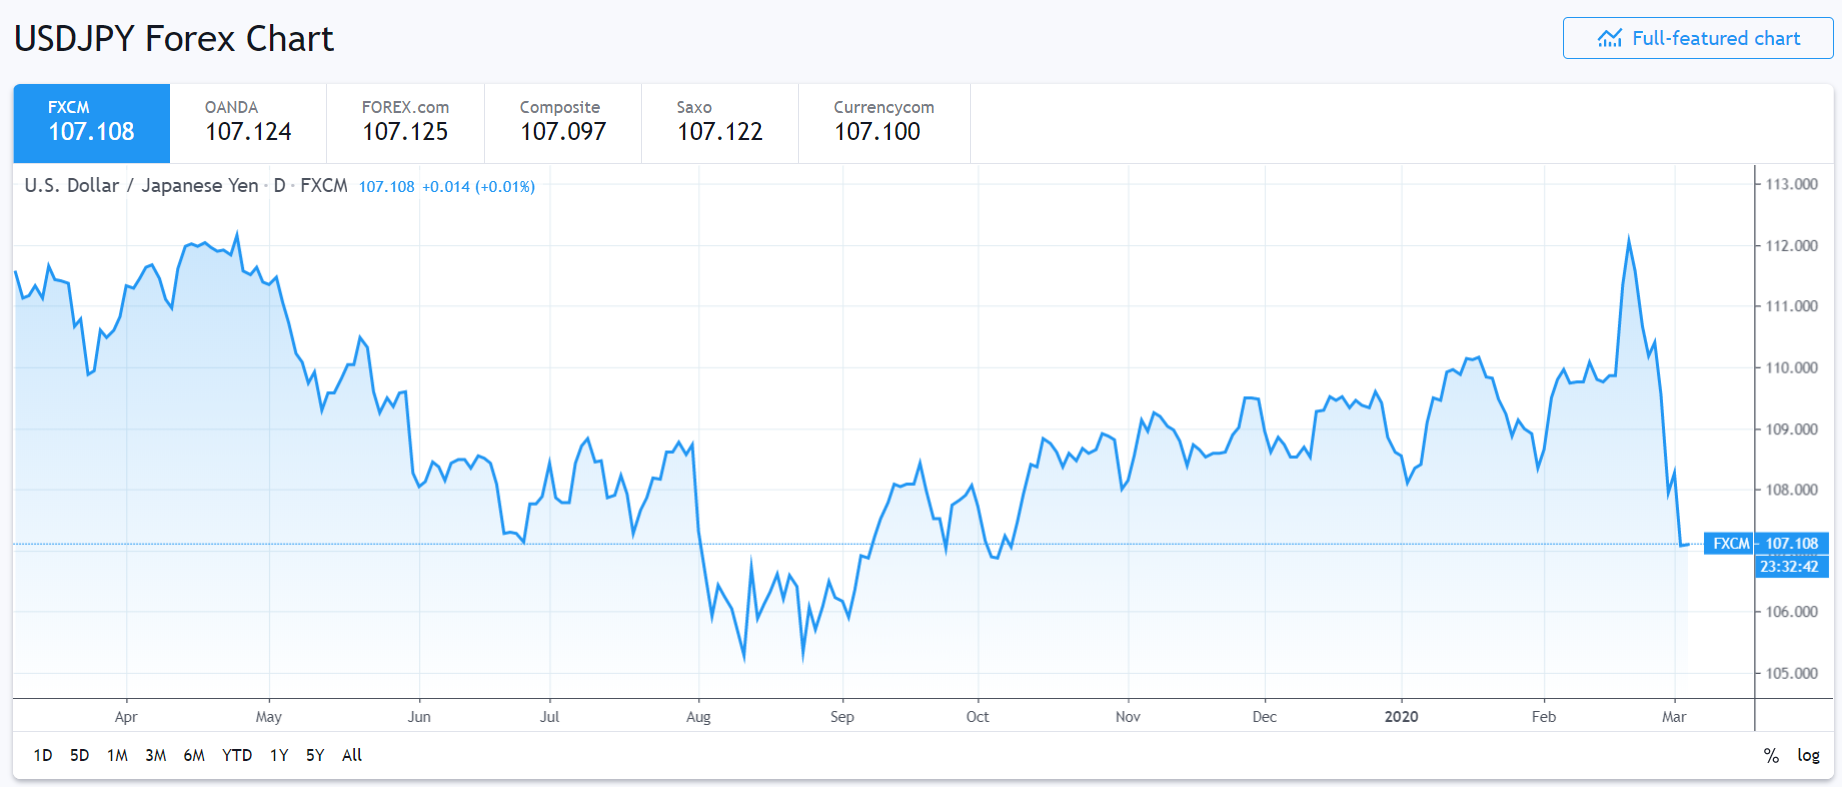 USD JPY 1 Year Chart - FXCM Trading View - 04 March 2020